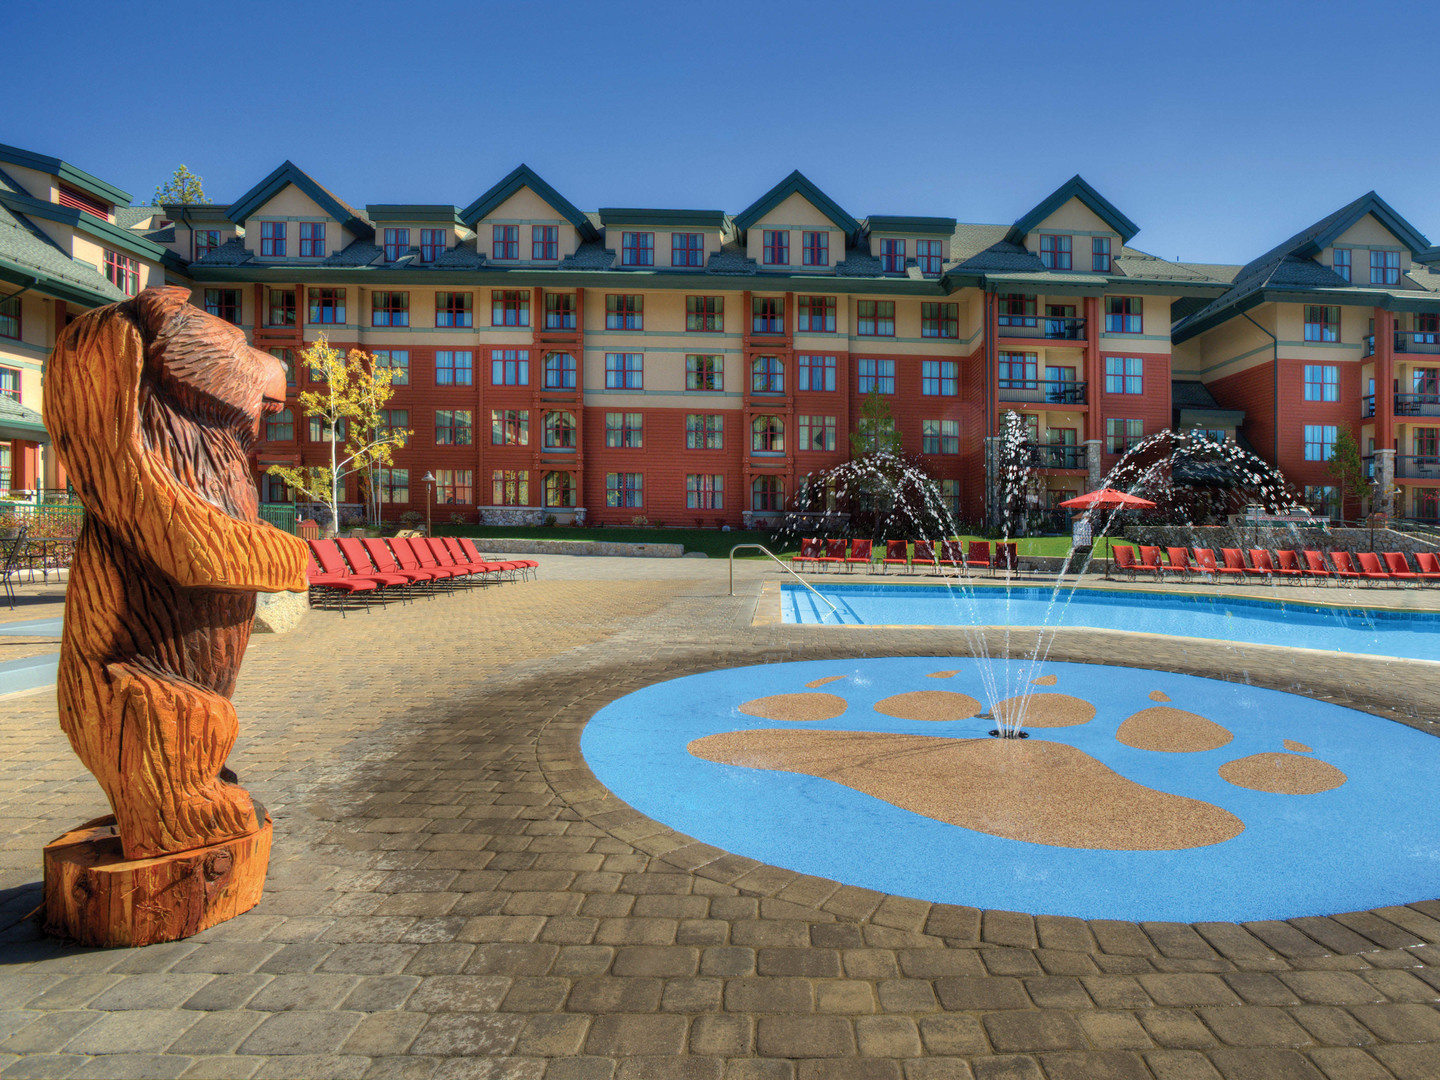 Marriott's Timber Lodge<span class='trademark'>®</span> Splash Pad. Marriott's Timber Lodge<span class='trademark'>®</span> is located in South Lake Tahoe, California United States.